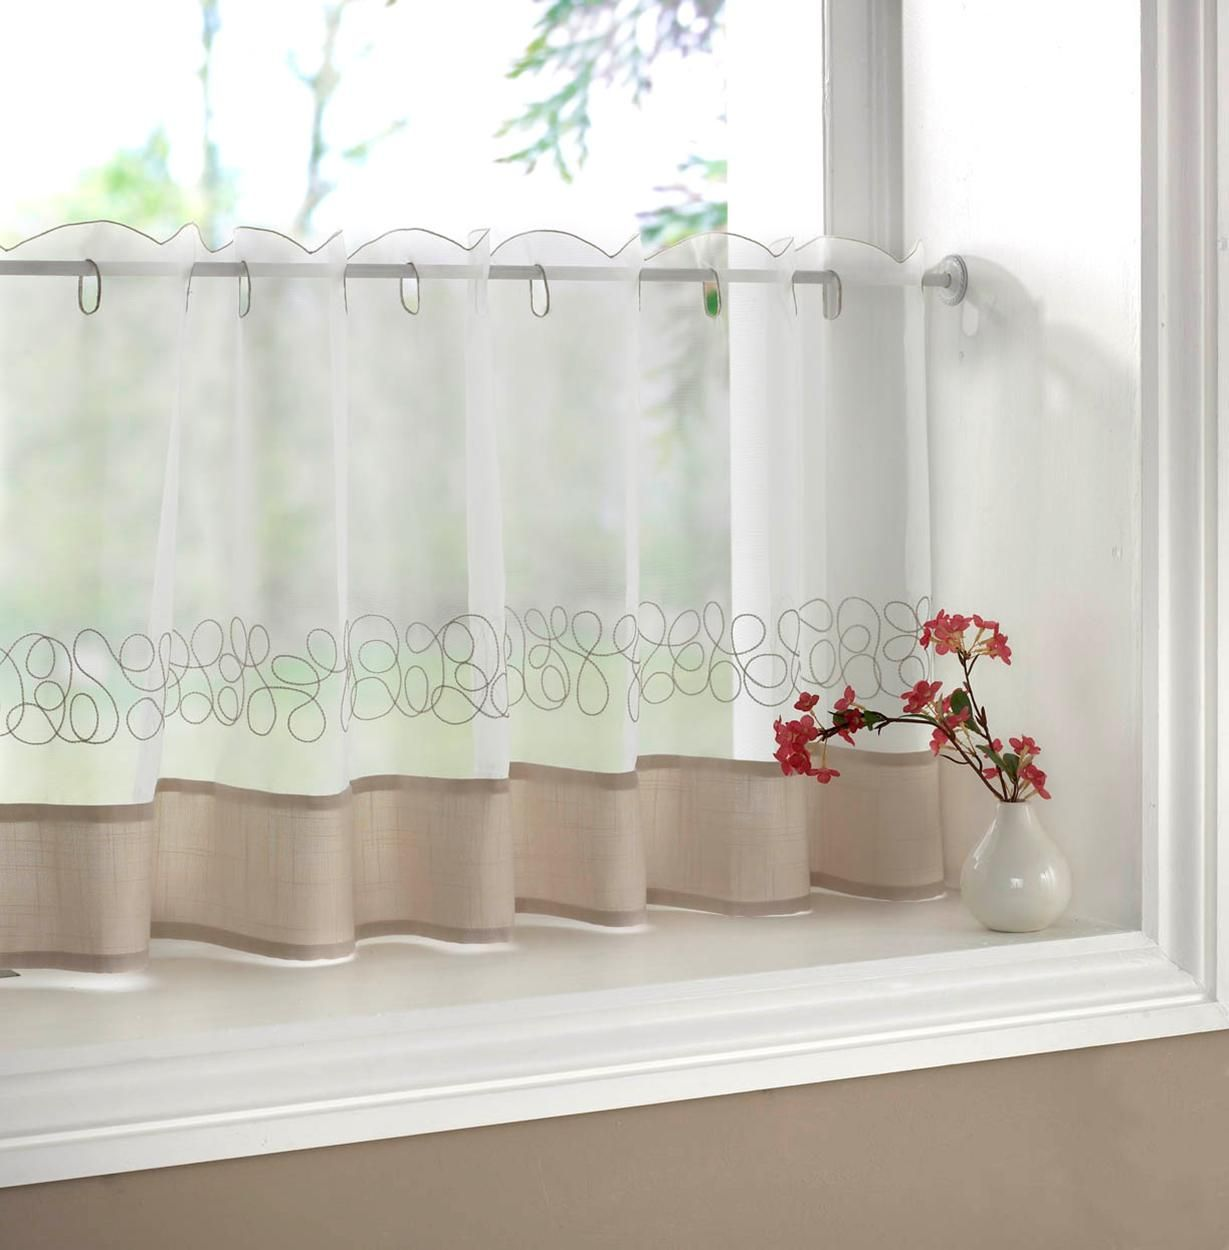 Pretty Half Window Curtains On Window With Small Vase And Flower